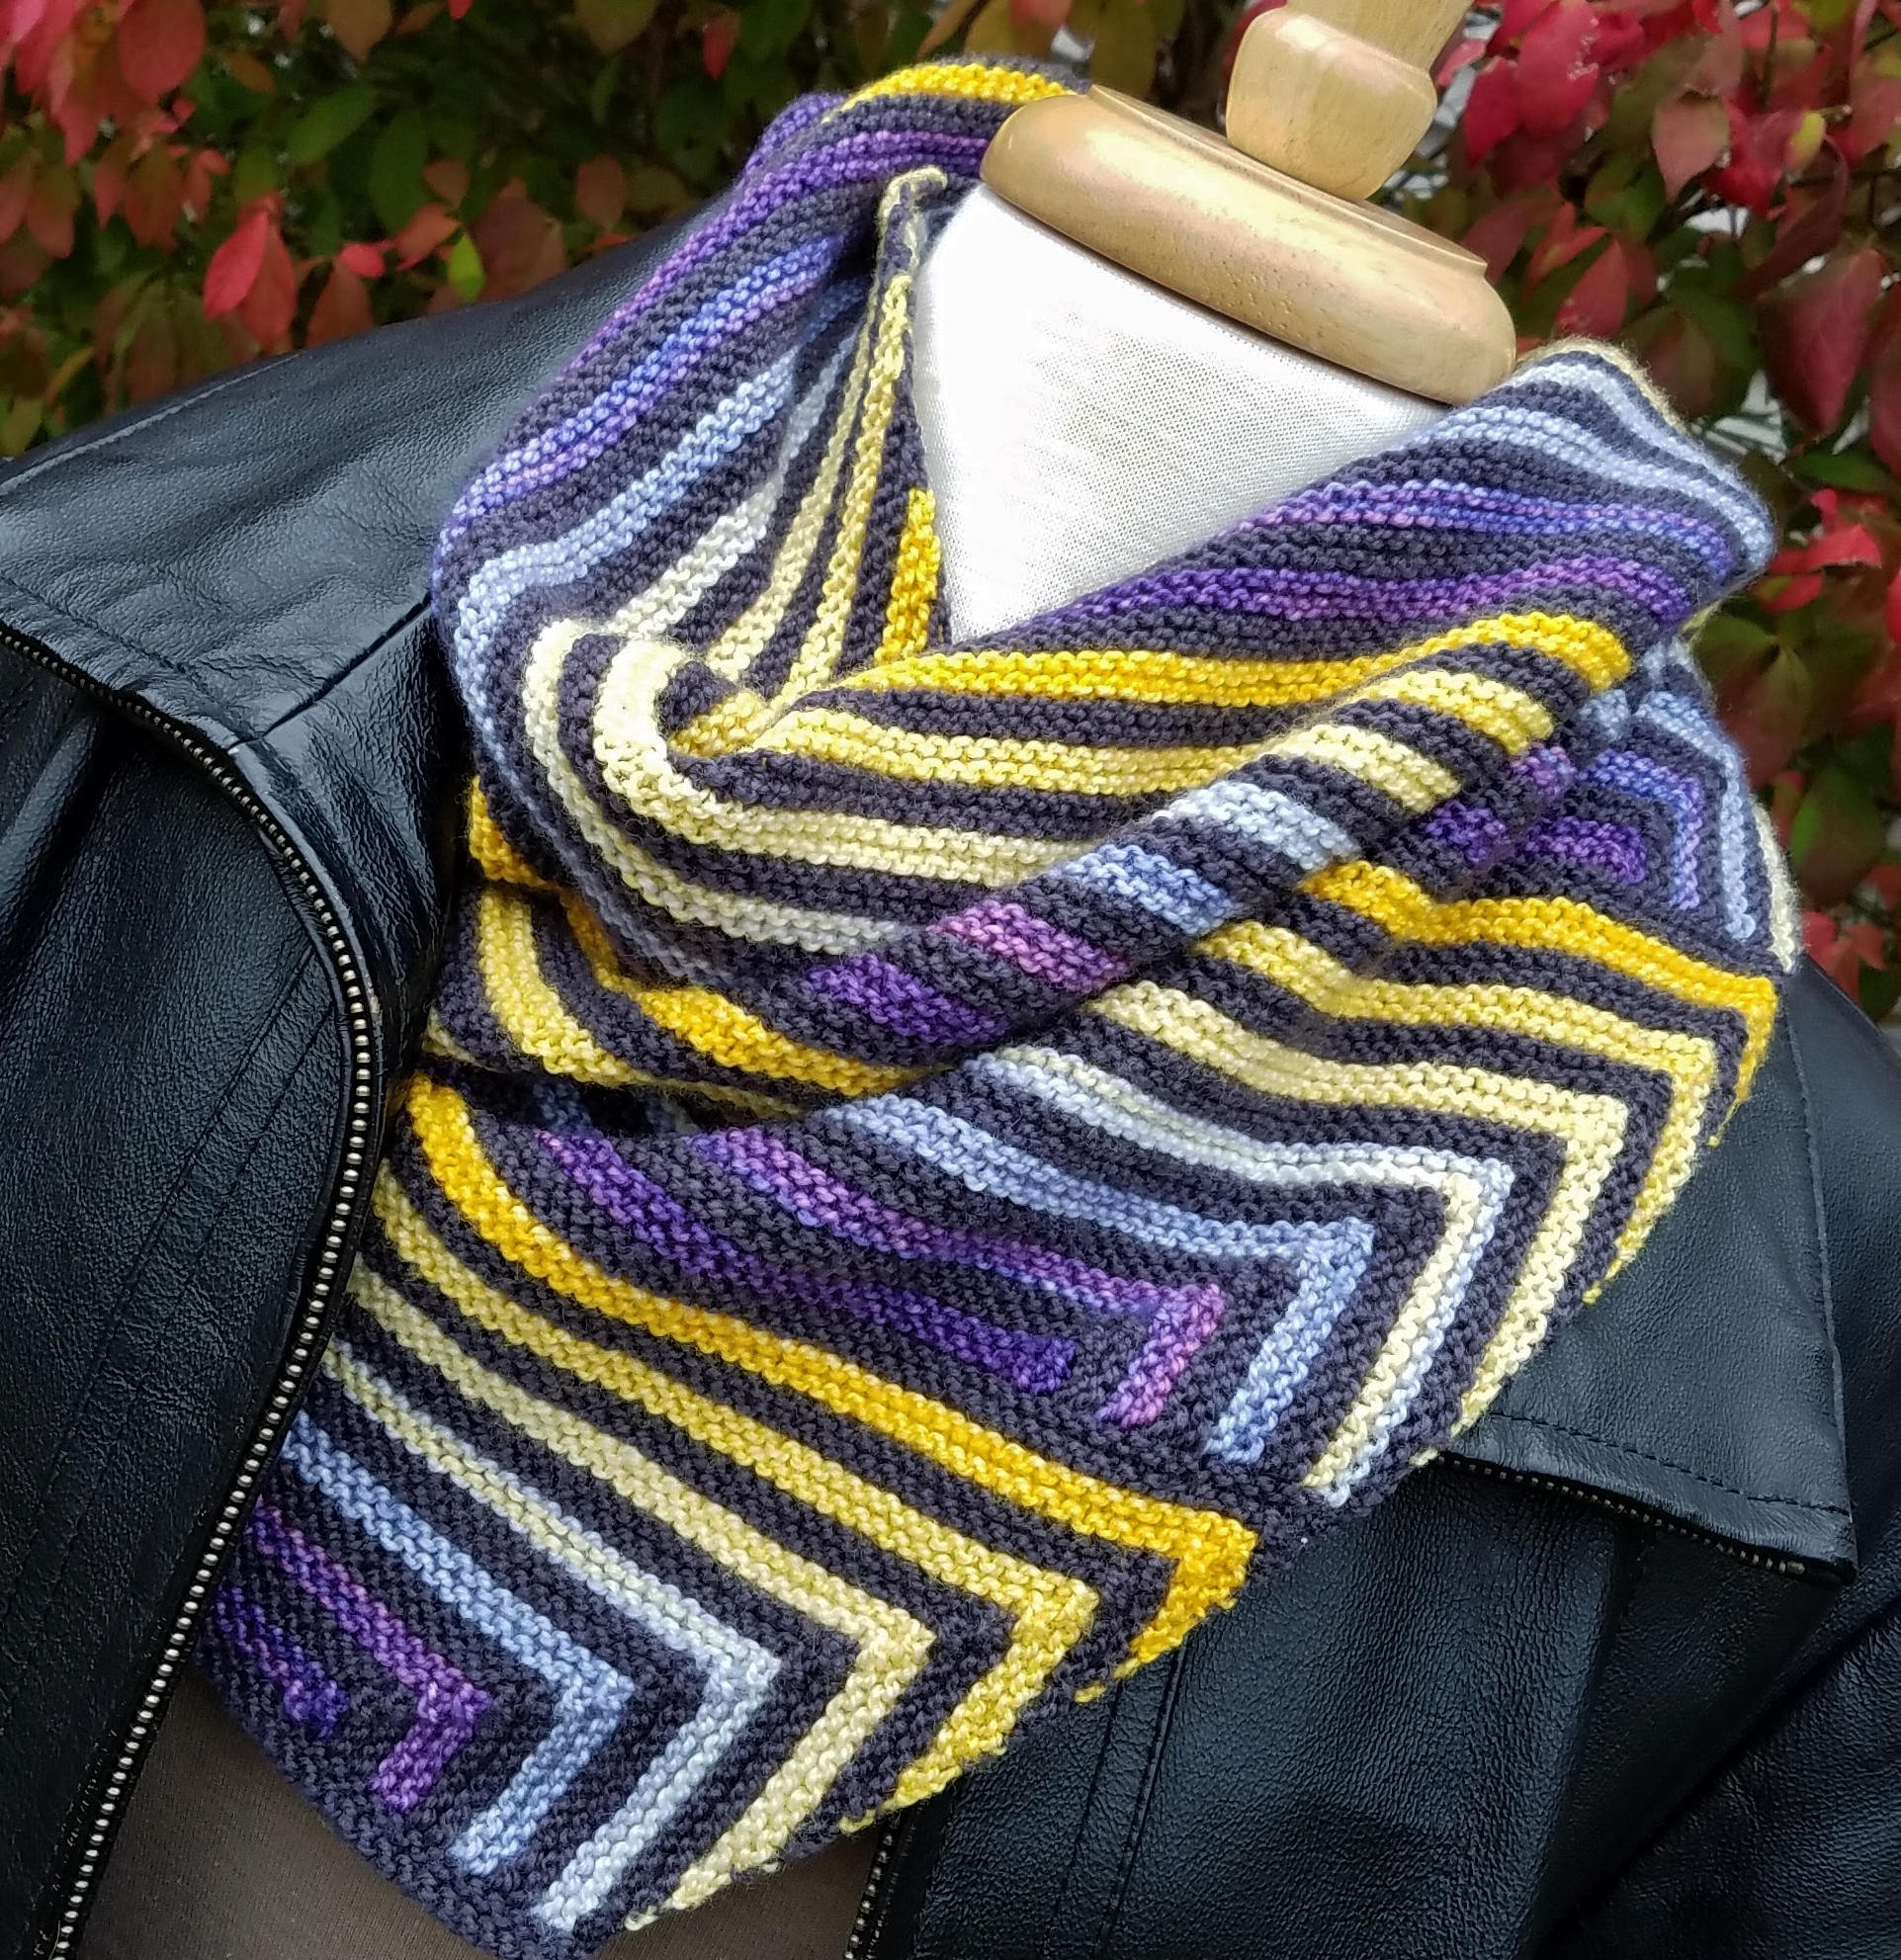 Remily Knits Thoughtful Patterns For Avid Knitters